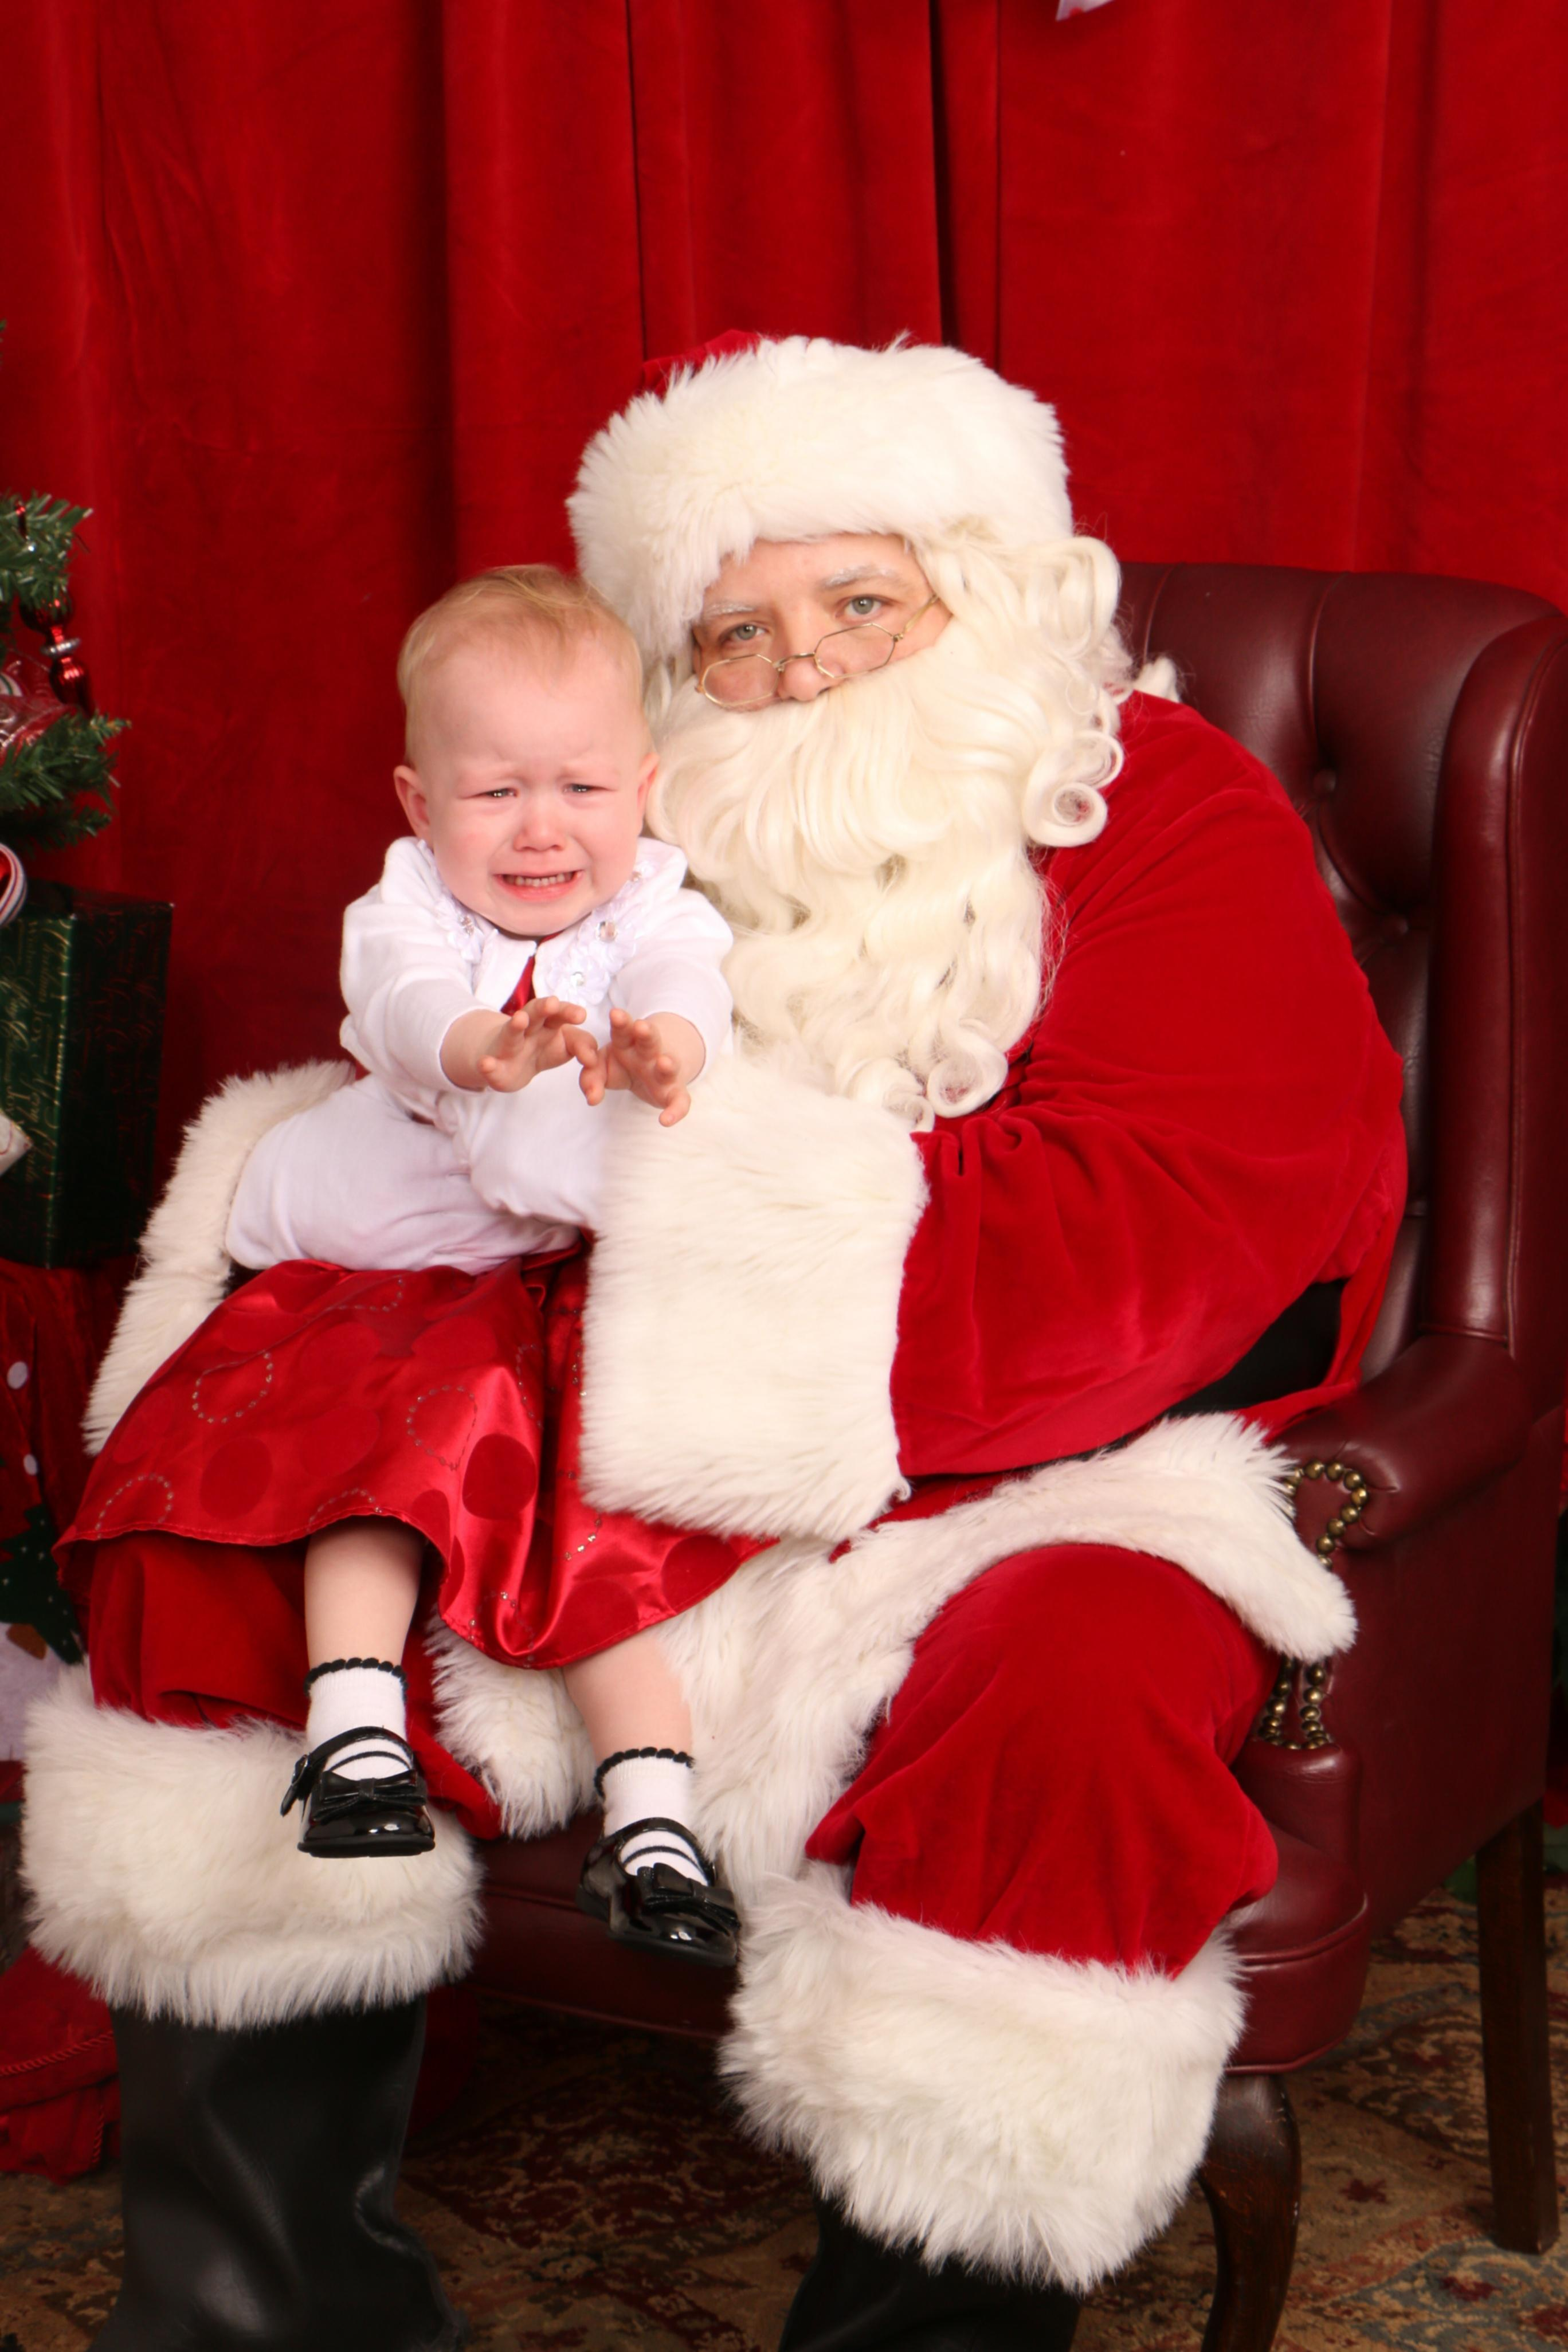 Ah, Santa Claus - the glorious bearded man in the big red suit who fulfills our kiddos holiday dreams and wishes.  Also doubling as, apparently, the scariest man alive. Grab a glass of eggnog, sit back and feast your eyes on these Santa pics gone wrong - or as I call them...realistic Santa pics. (Image: April Havener){ }